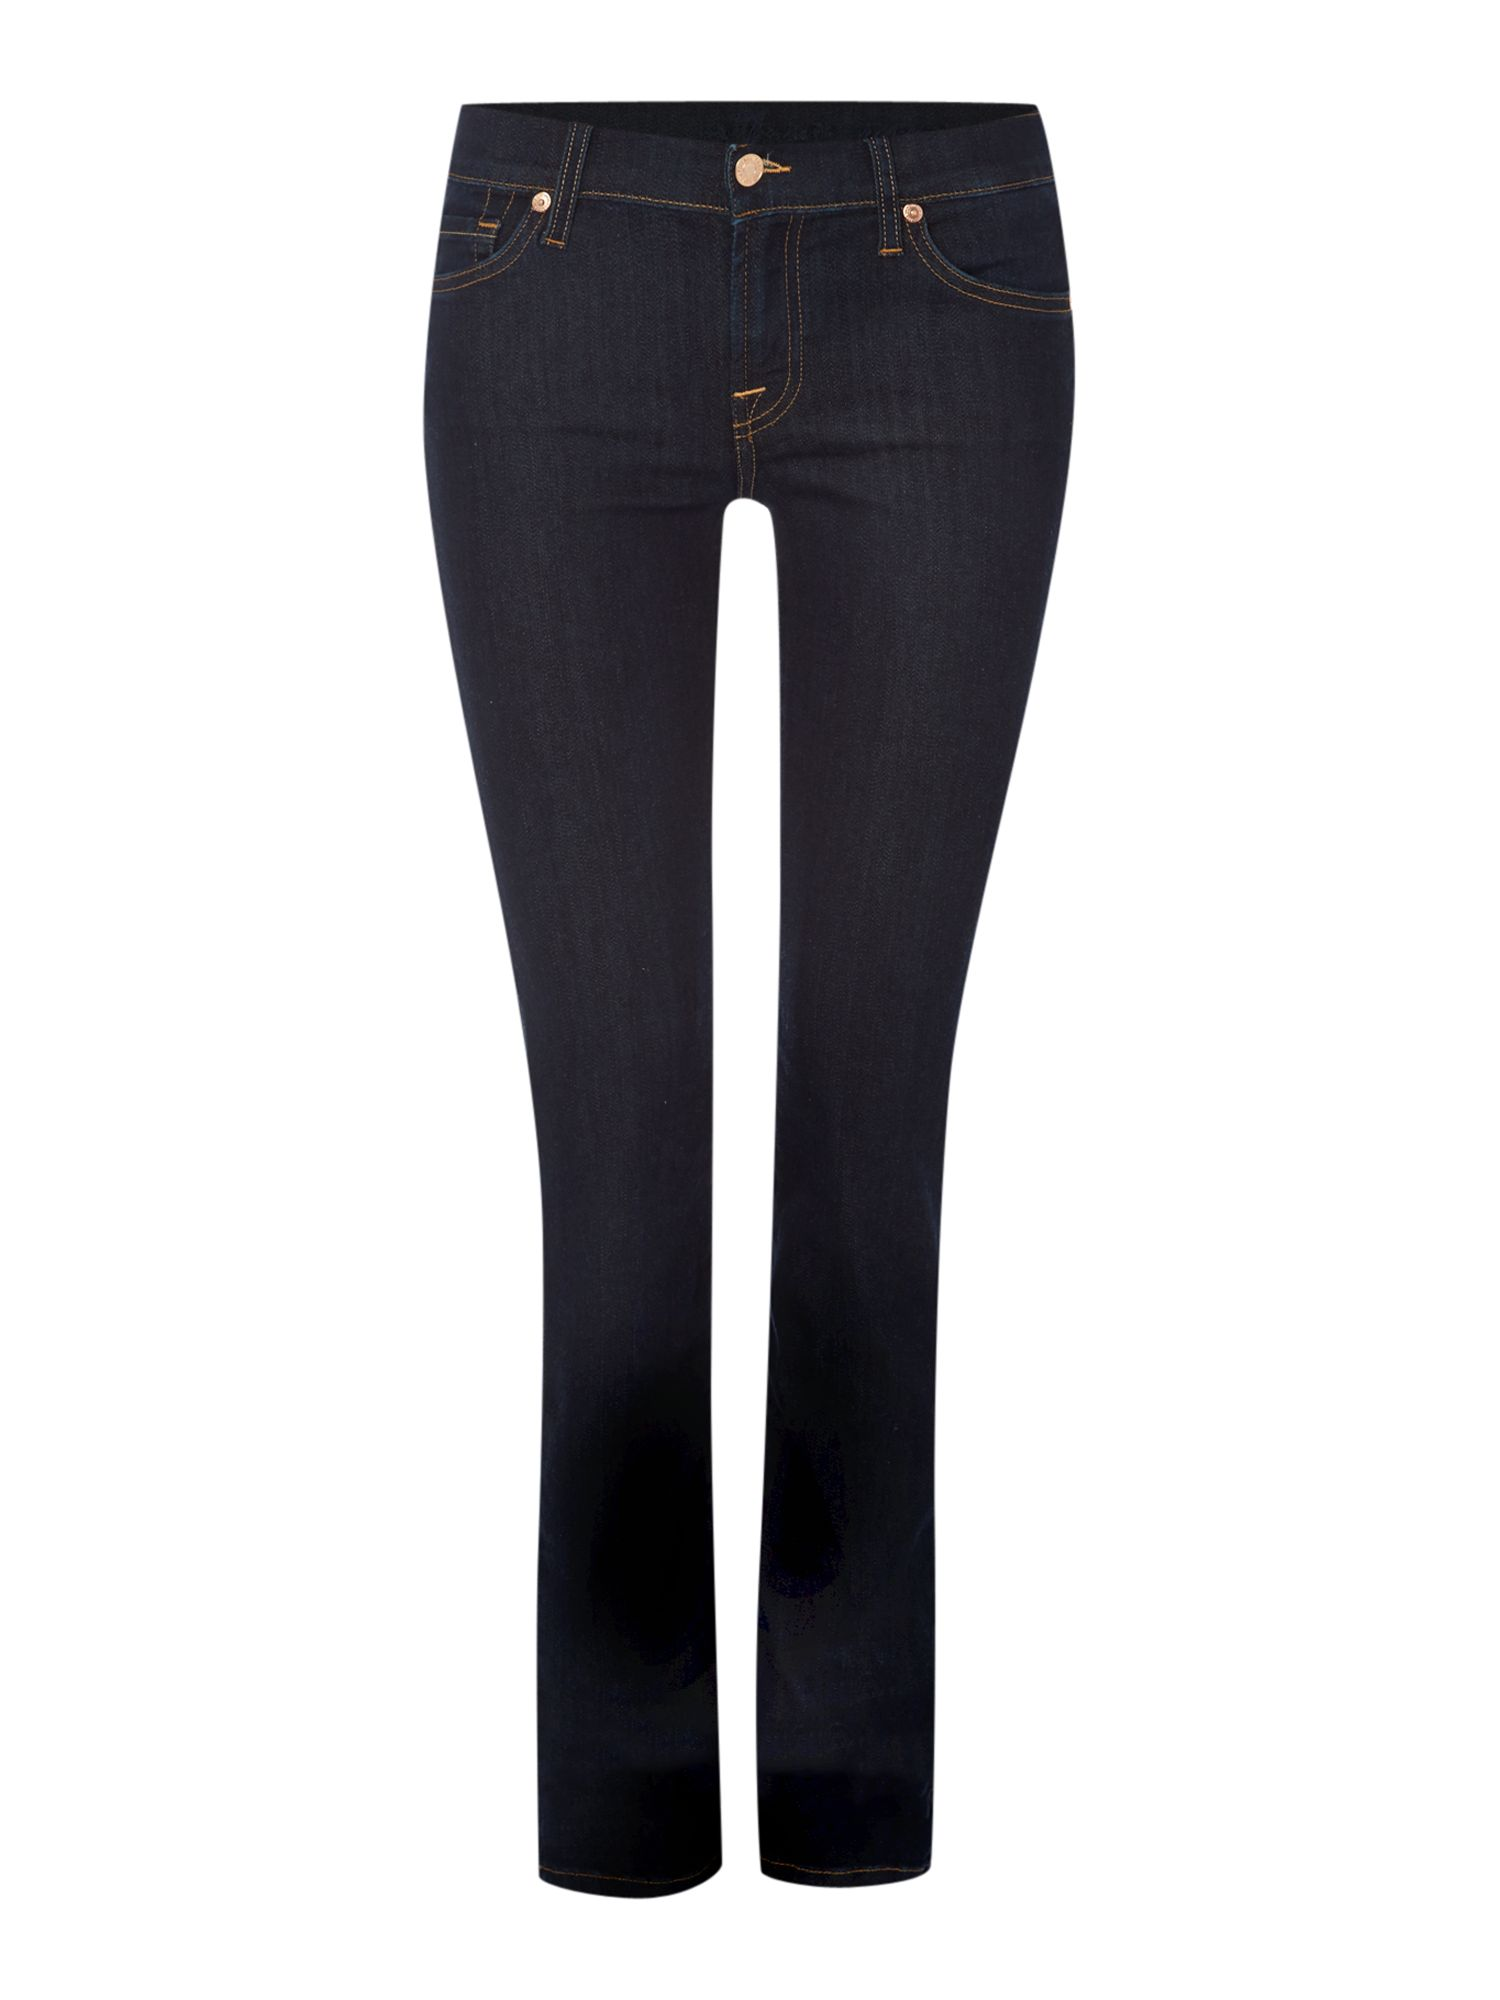 7 For All Mankind 7 For All Mankind Roxanne slim jeans in Long Dark Beach, Denim Dark Wash